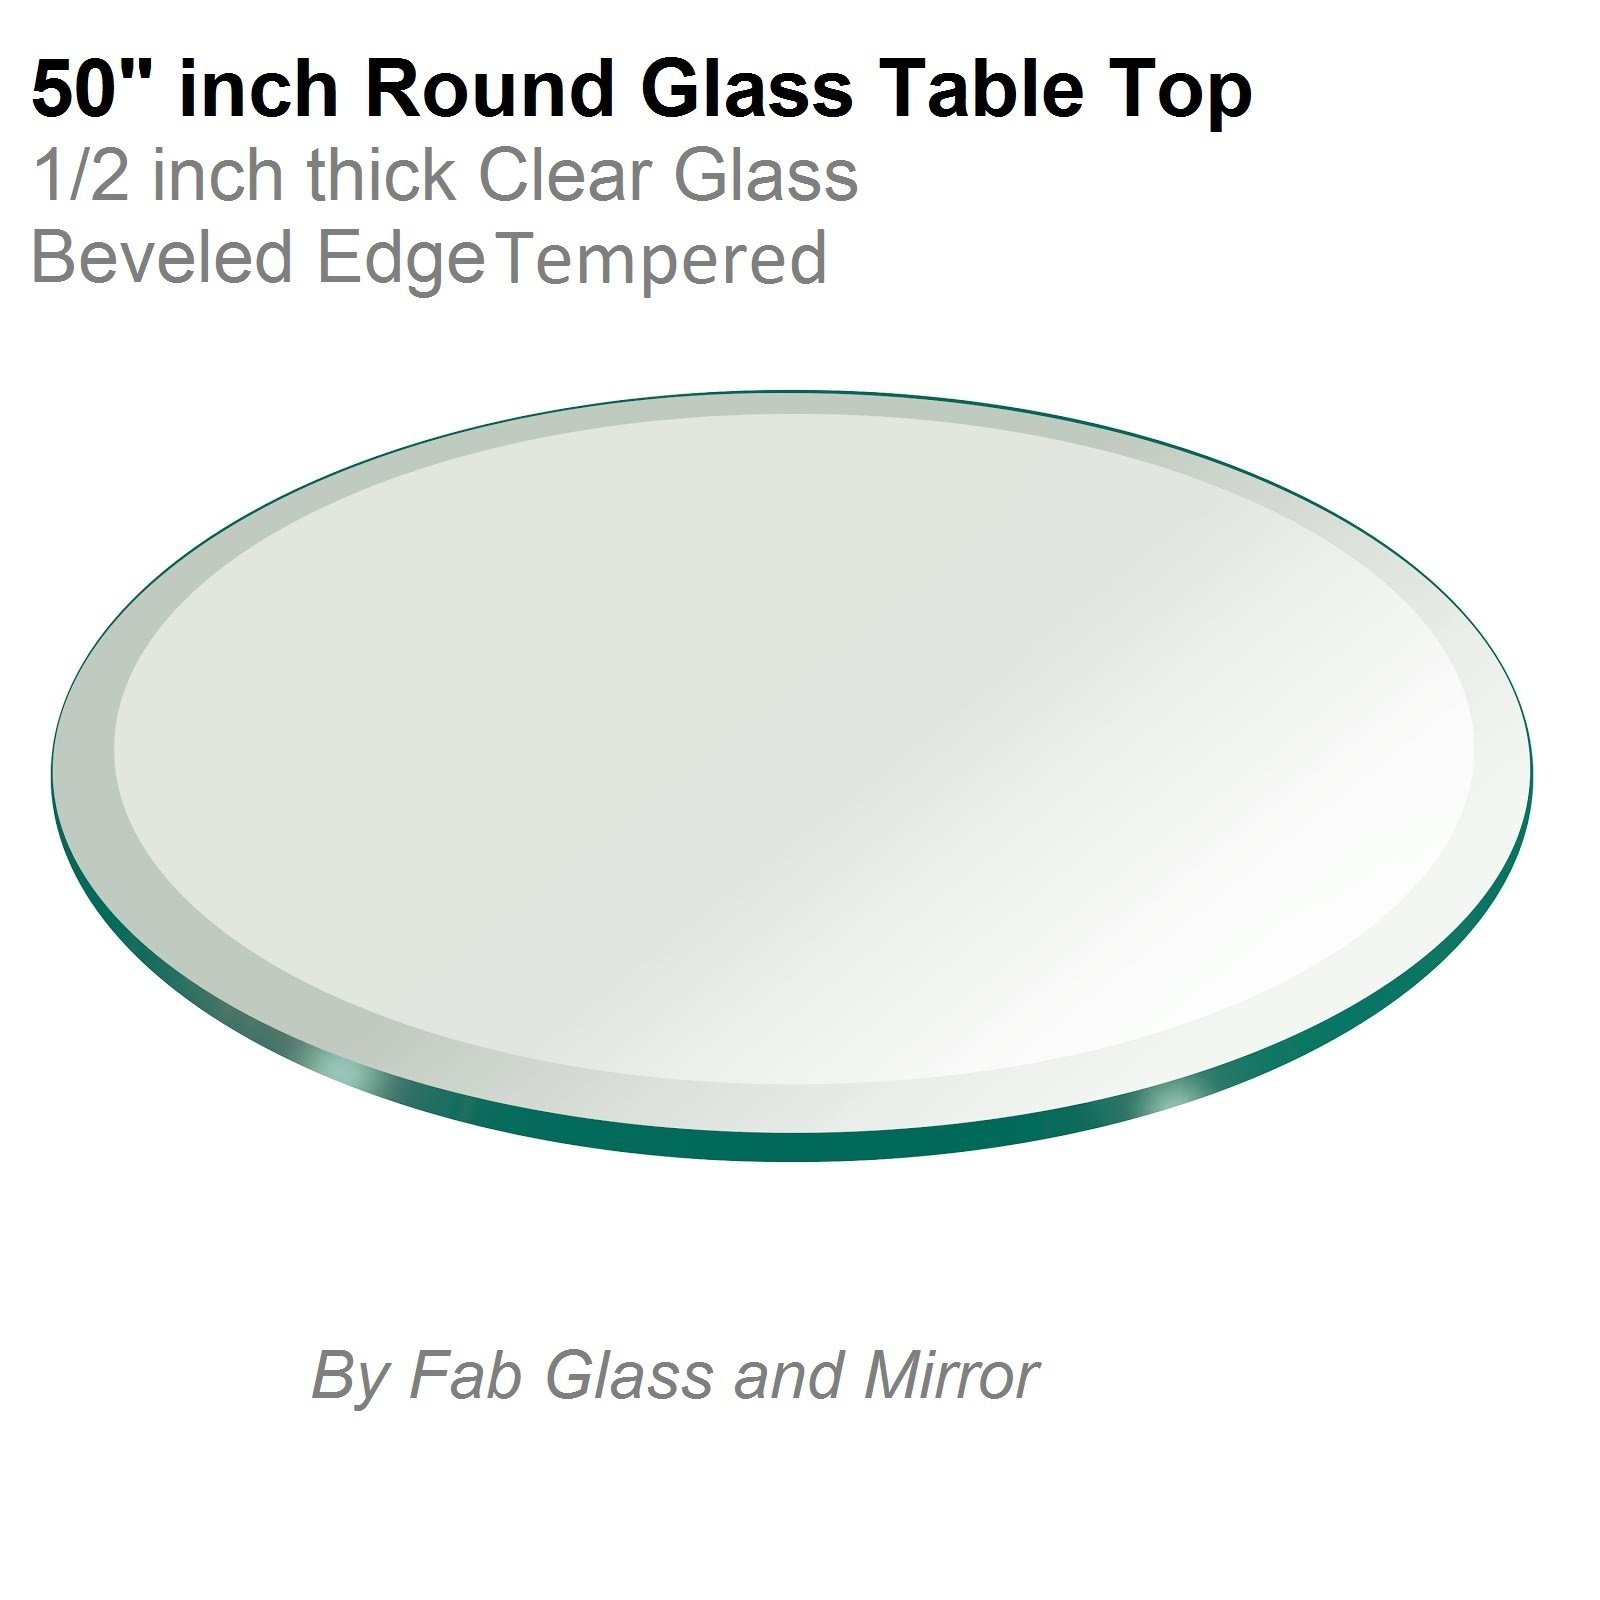 50'' Inch Round Glass Table Top 1/2'' Thick Tempered Beveled Edge by Fab Glass and Mirror